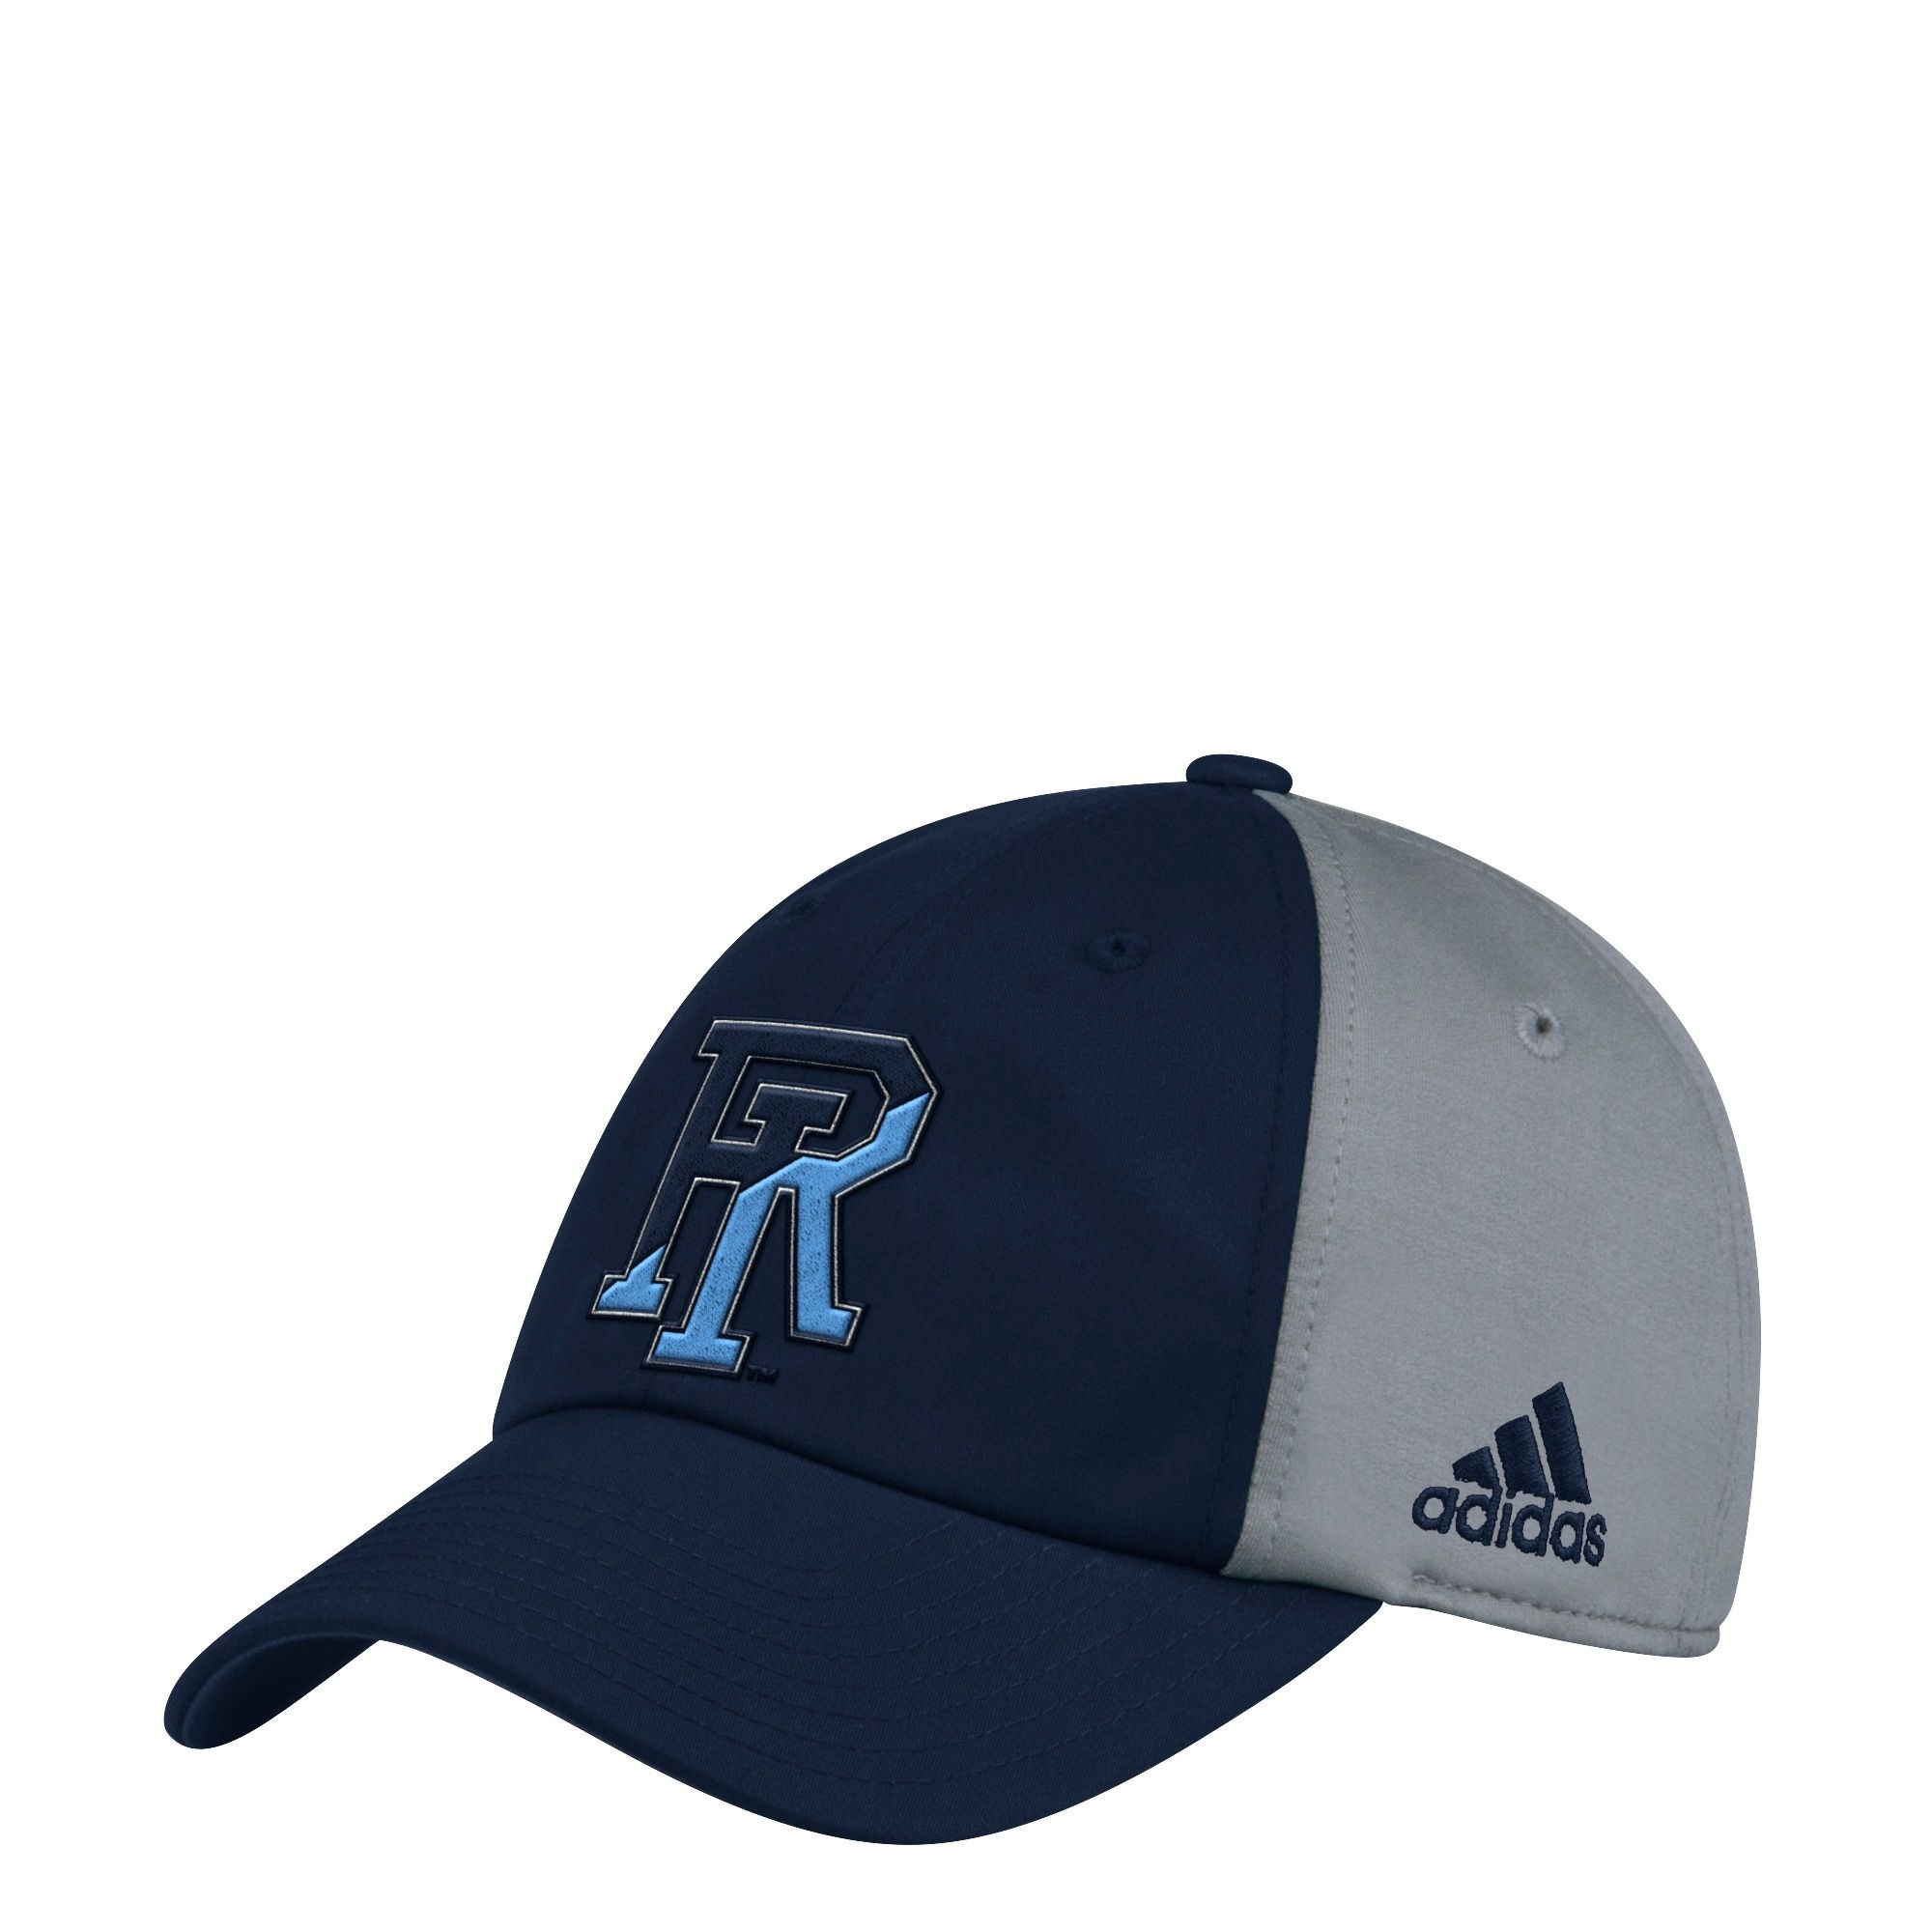 27f8032f7a2 Adidas Adjustable Slouch Cap